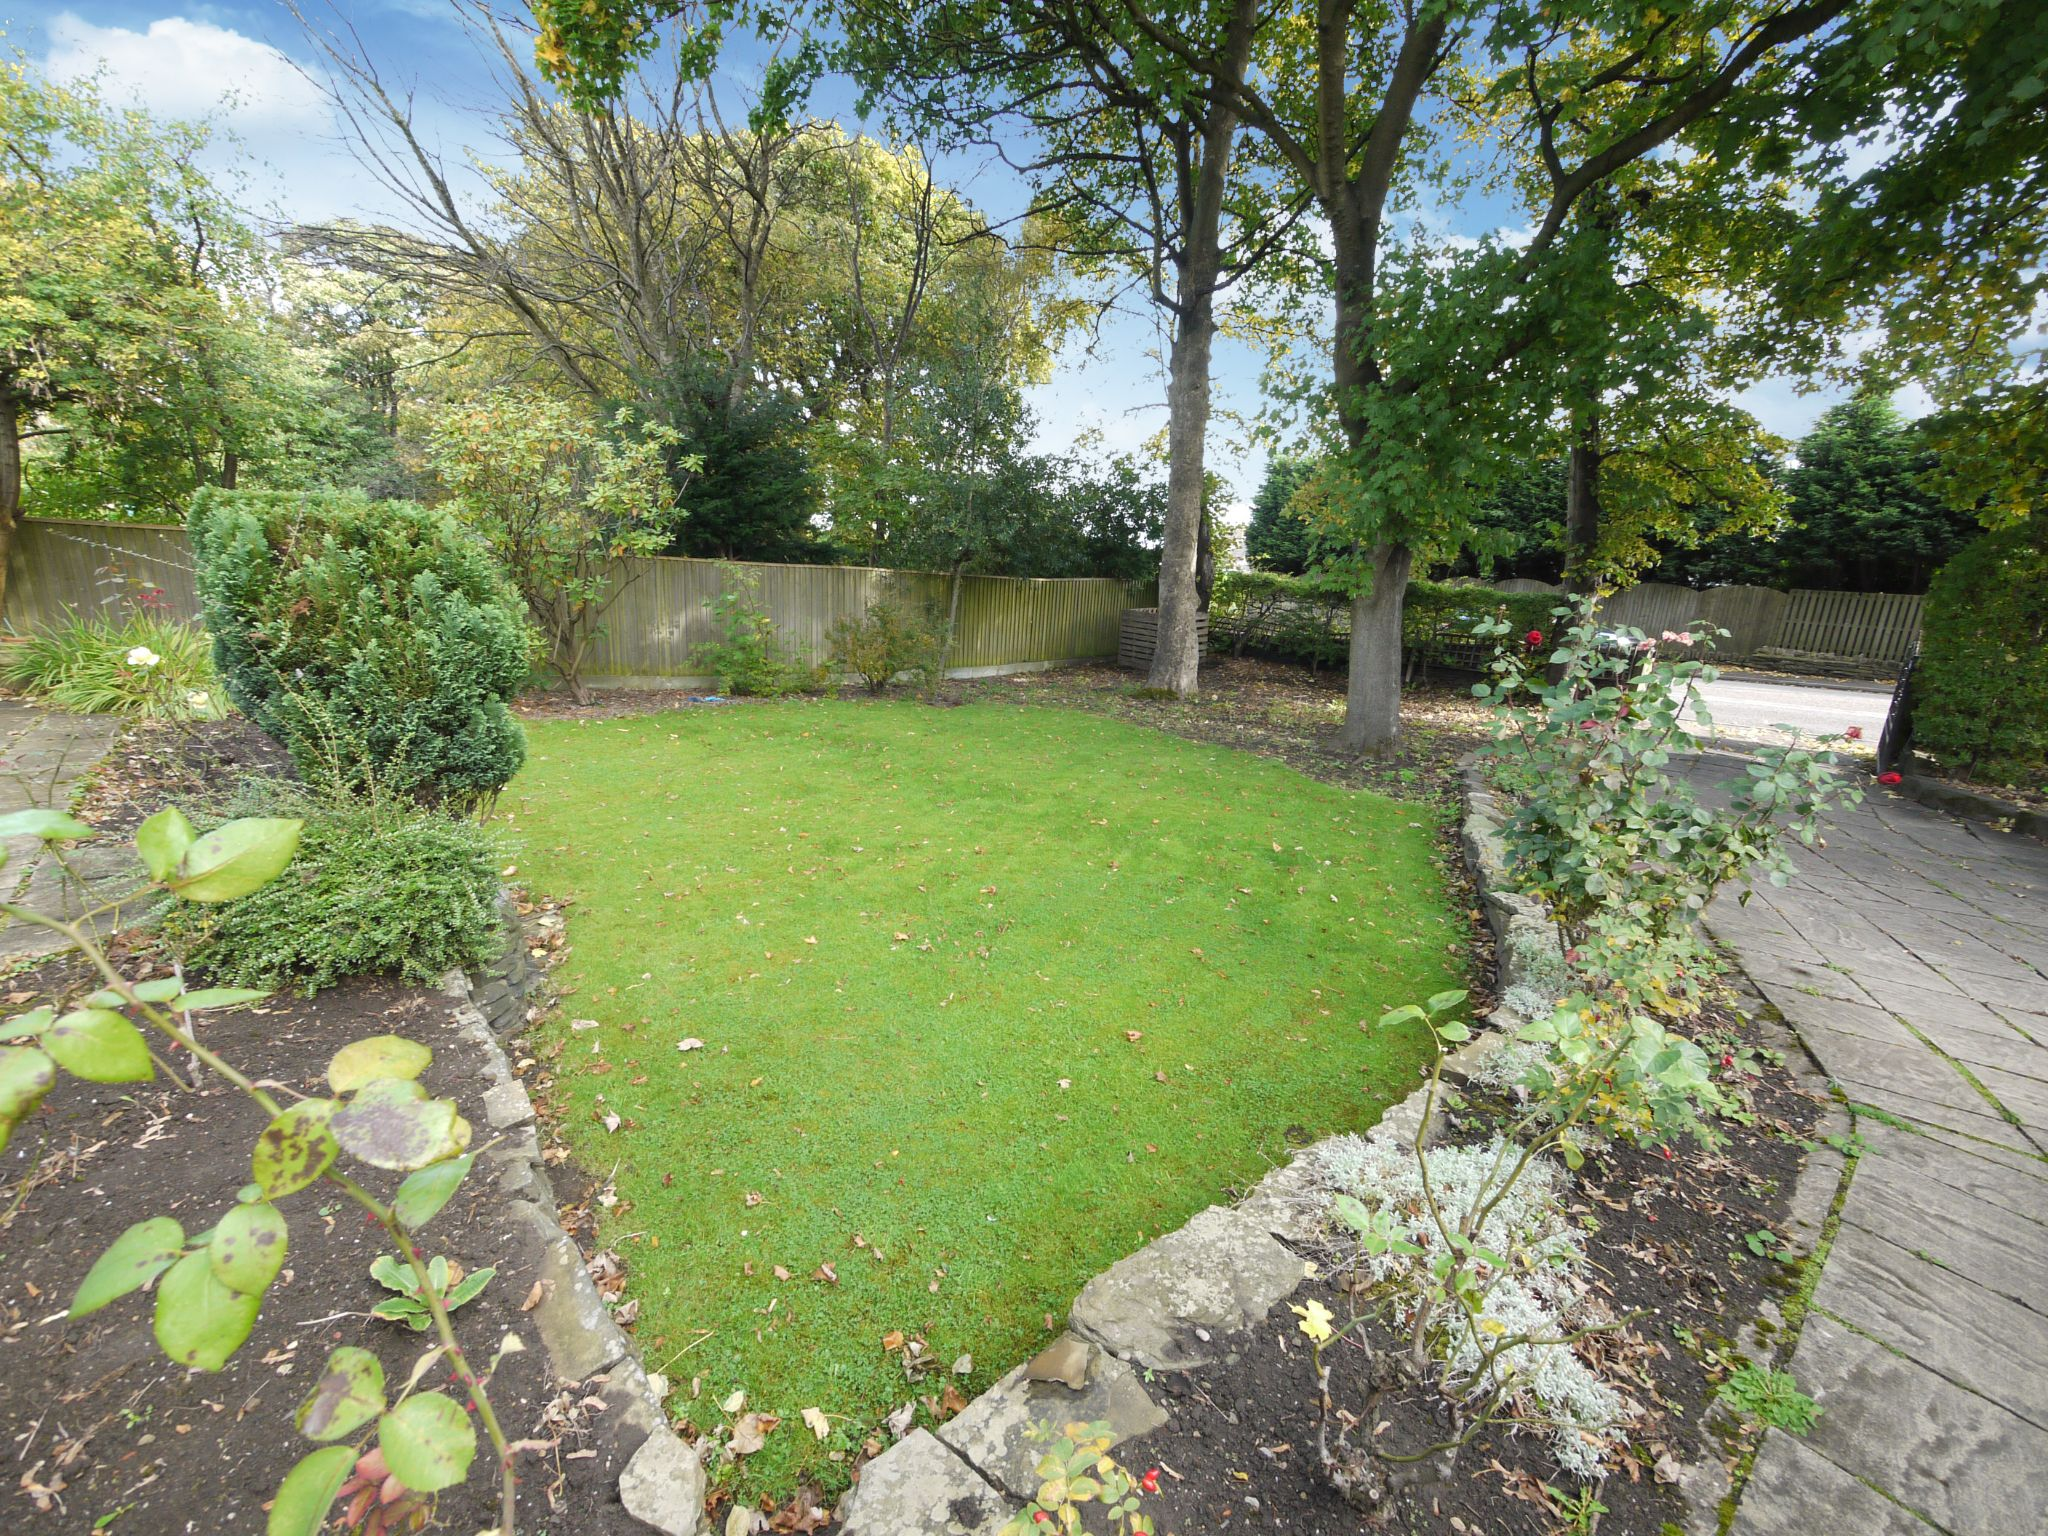 3 bedroom detached house SSTC in Brighouse - Front garden.